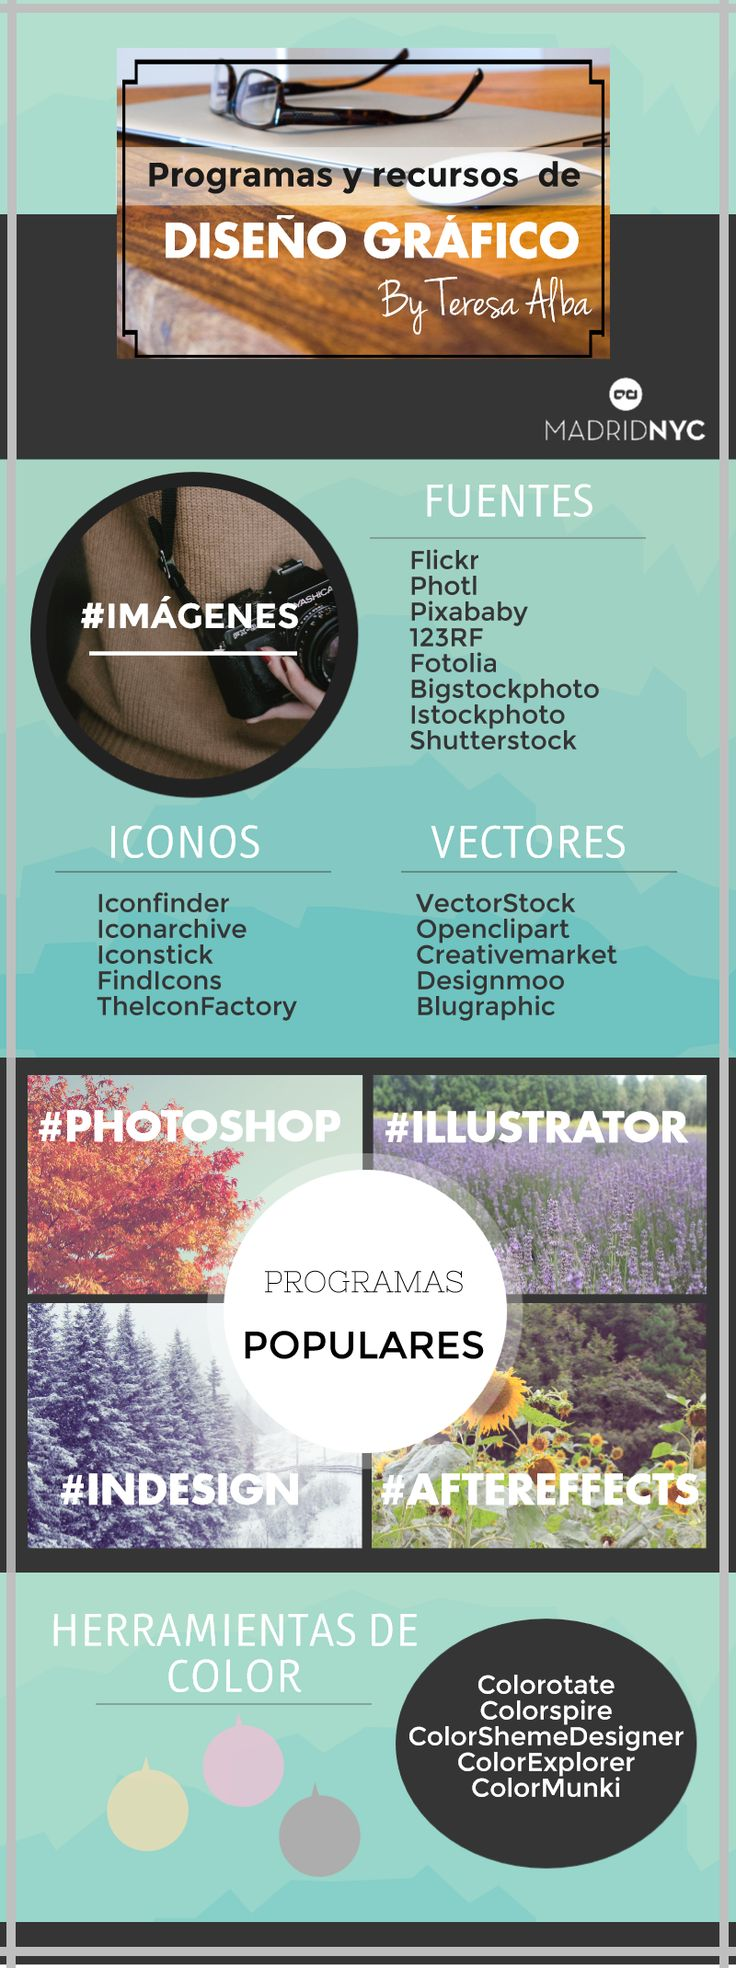 633 best Graphic design images on Pinterest | Graphics, Infographic ...